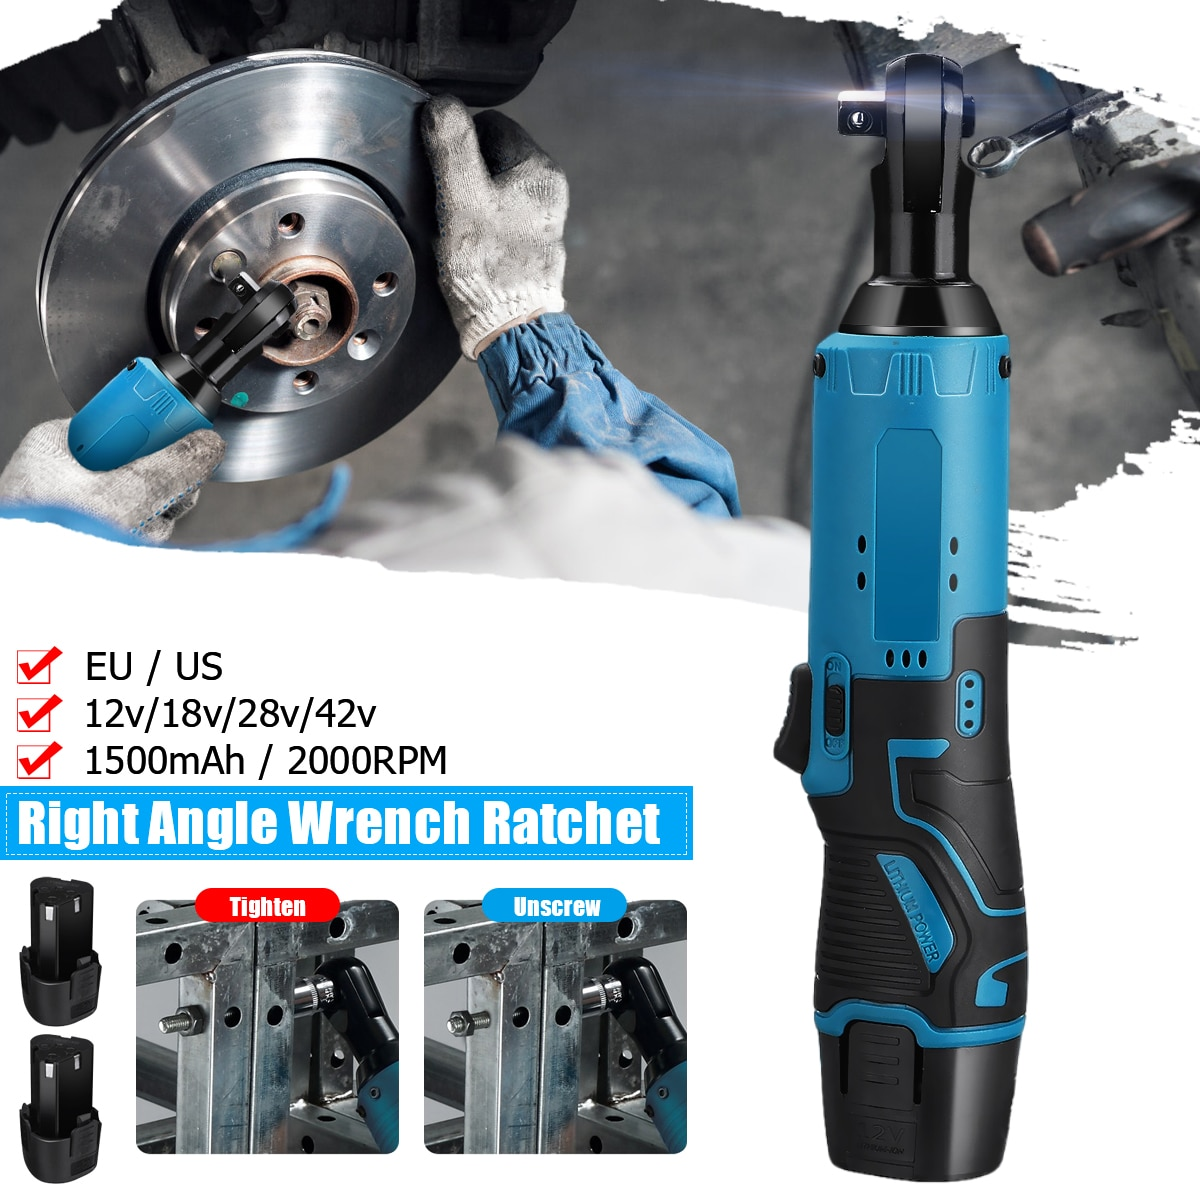 12V Electric Wrench 3/8 Cordless Ratchet 2